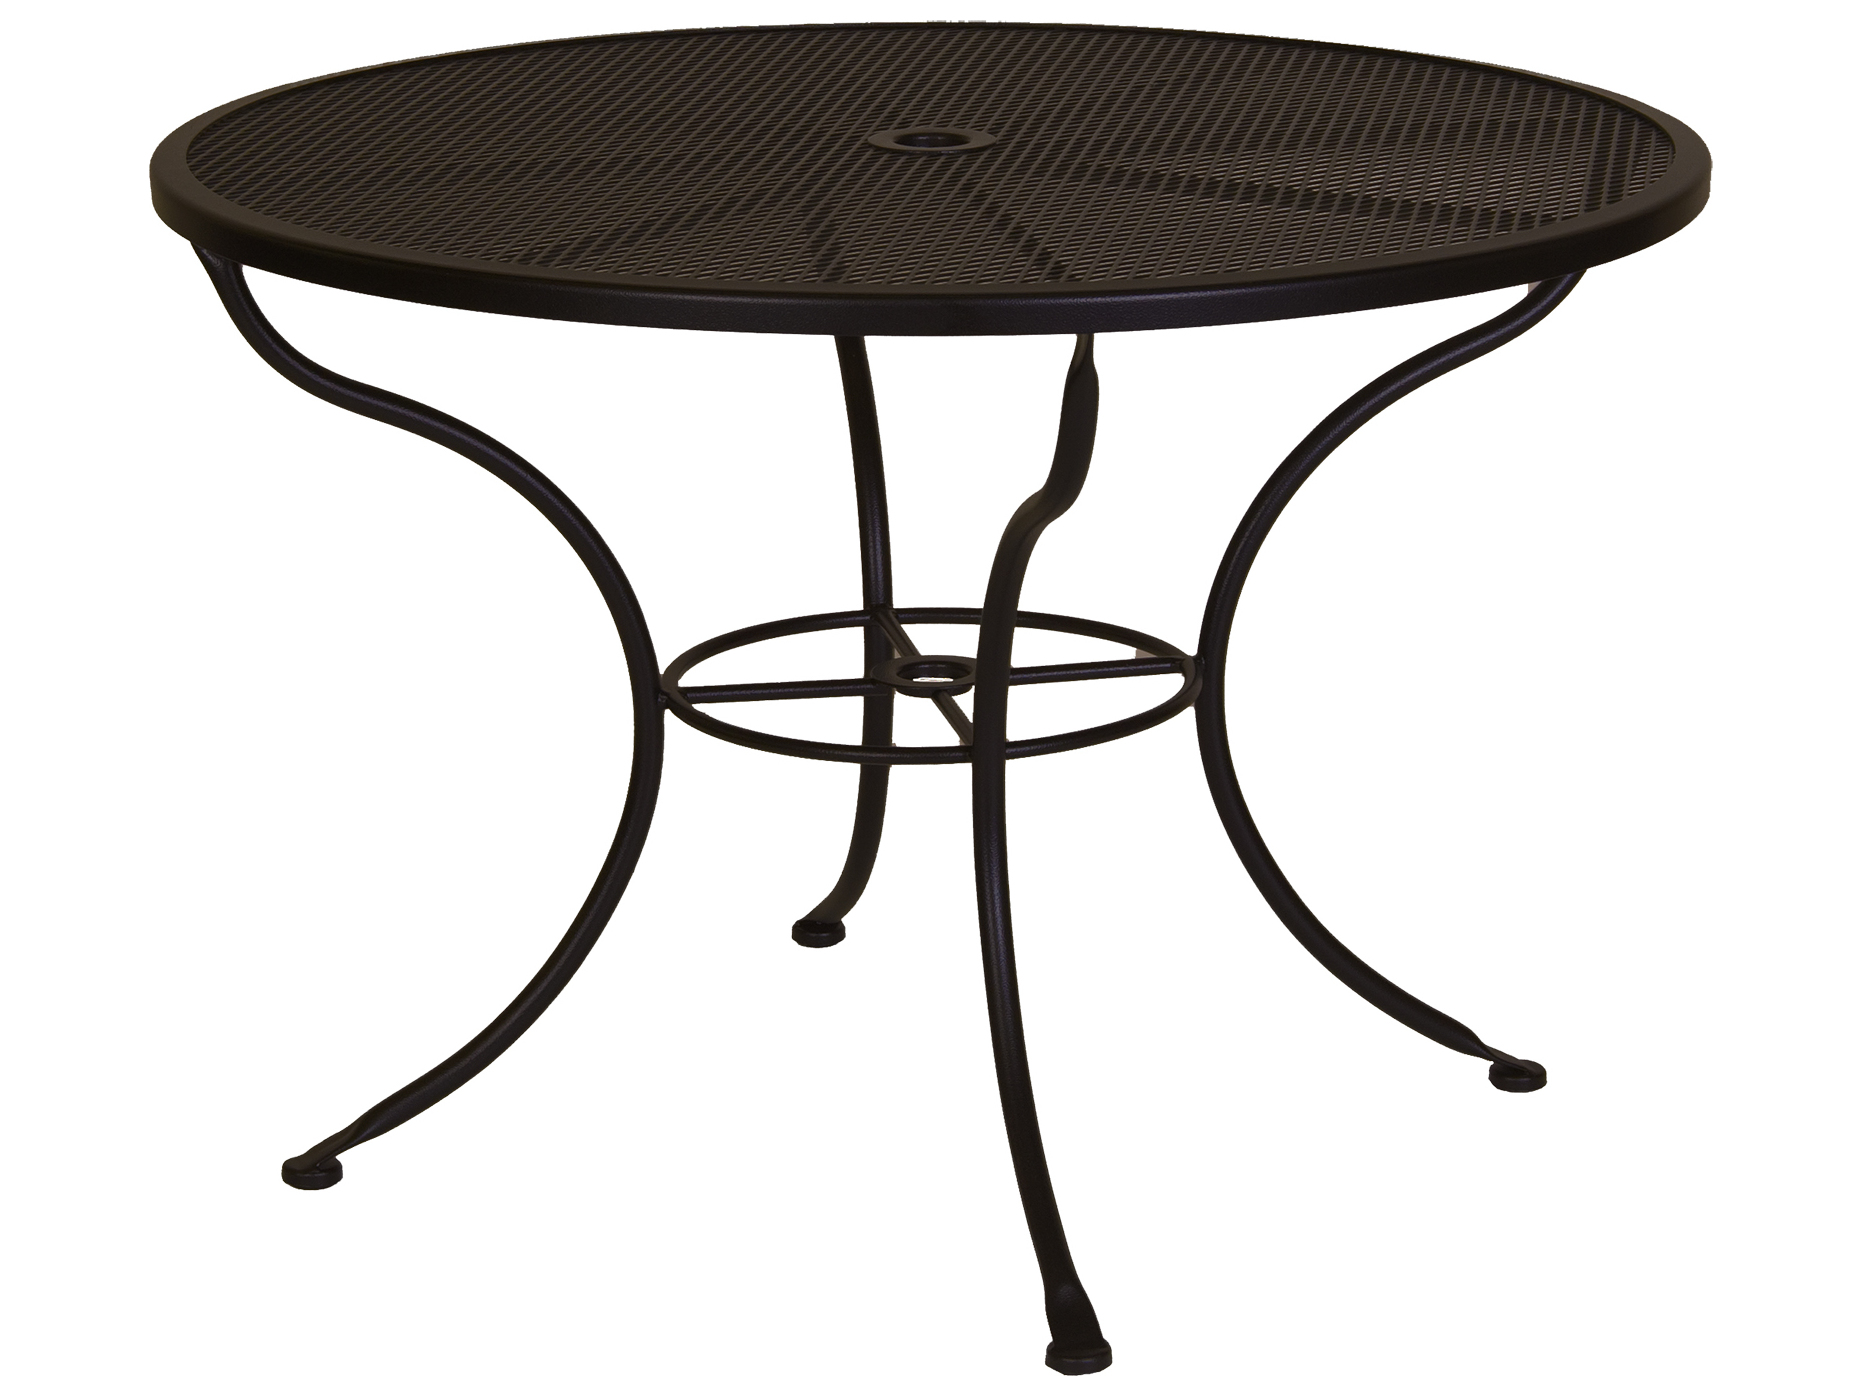 OW Lee Micro Mesh Wrought Iron 42 Round Dining Table With